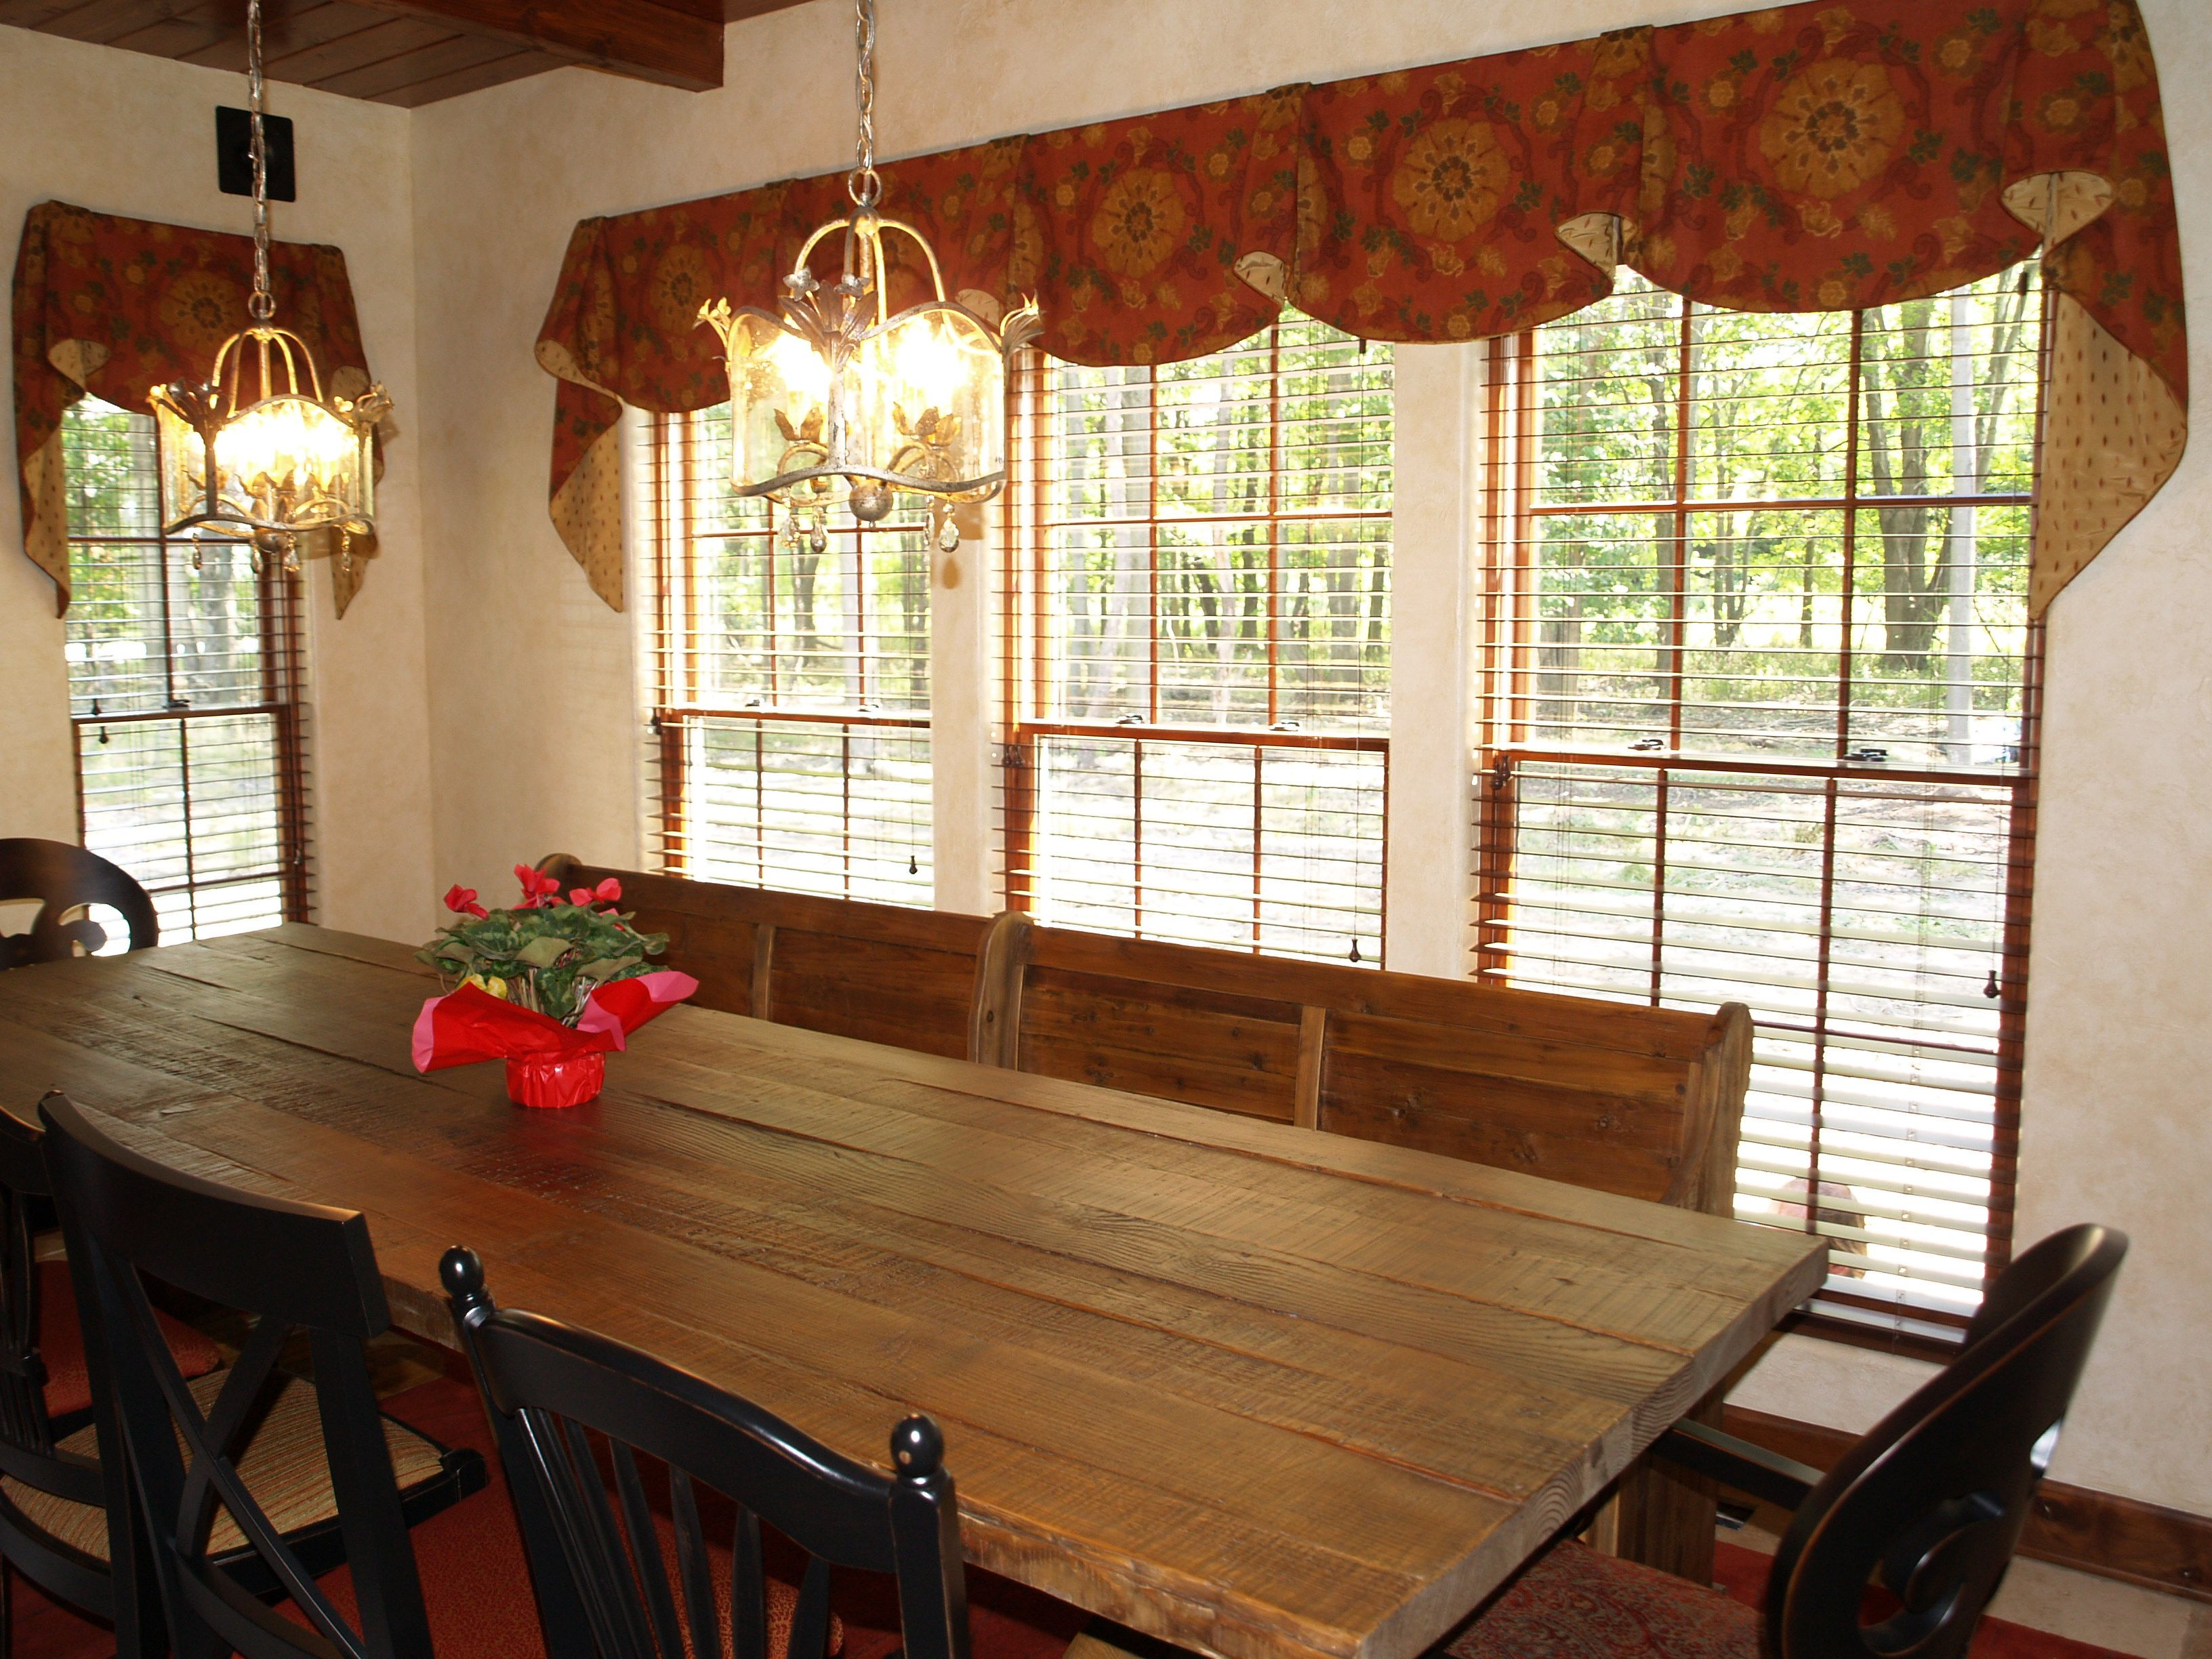 Imperial Valances With Extra Long Cascades In This Kitchen Mesmerizing Dining Room Valance Review